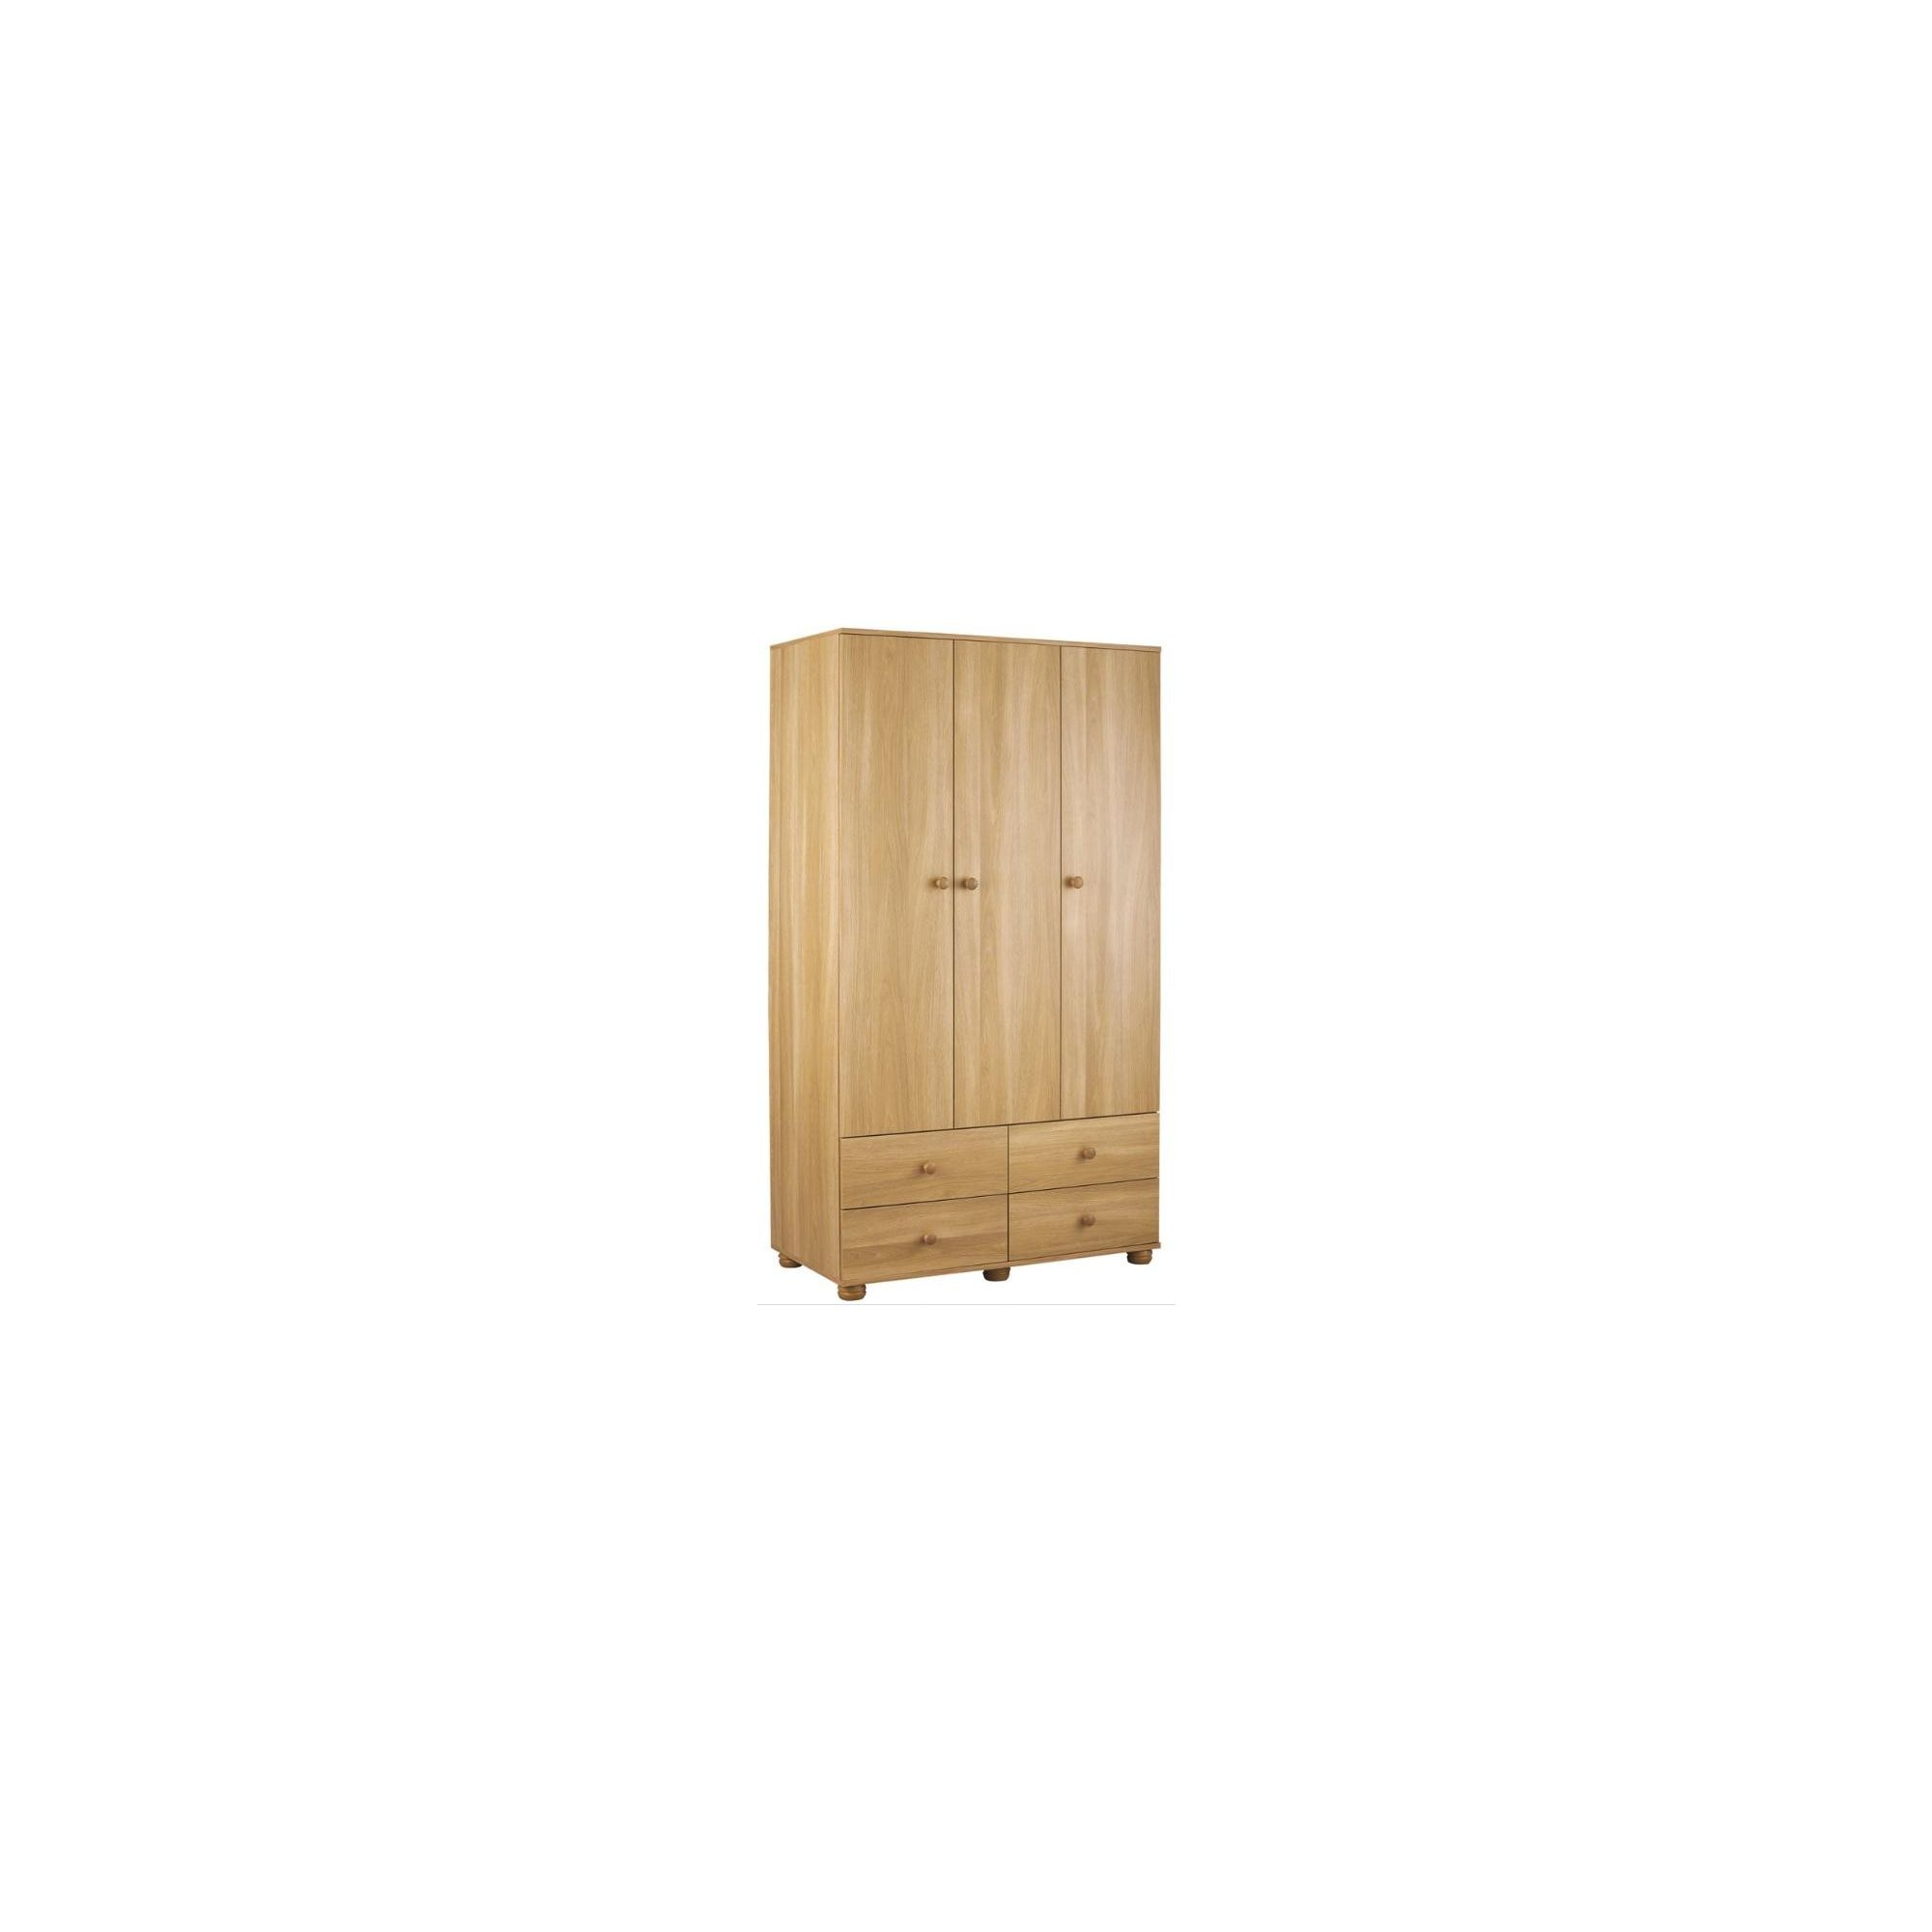 Urbane Designs Dorset 3 Door 4 Drawer Wardrobe - New Oak at Tesco Direct